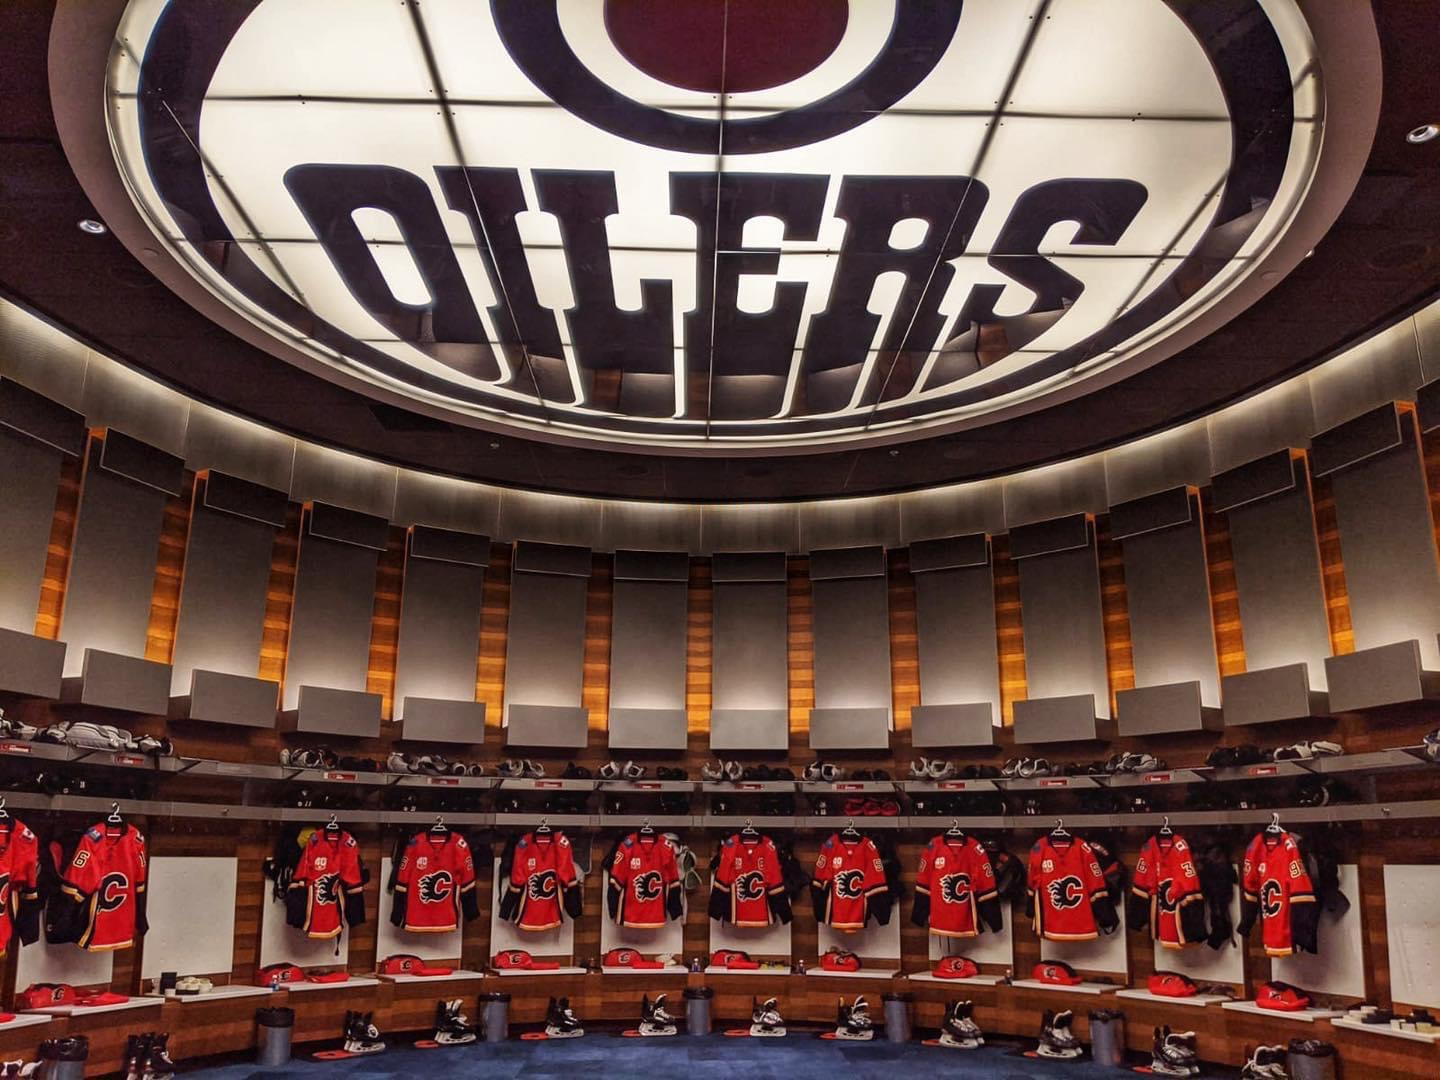 The Calgary Flames dressing room at Edmonton